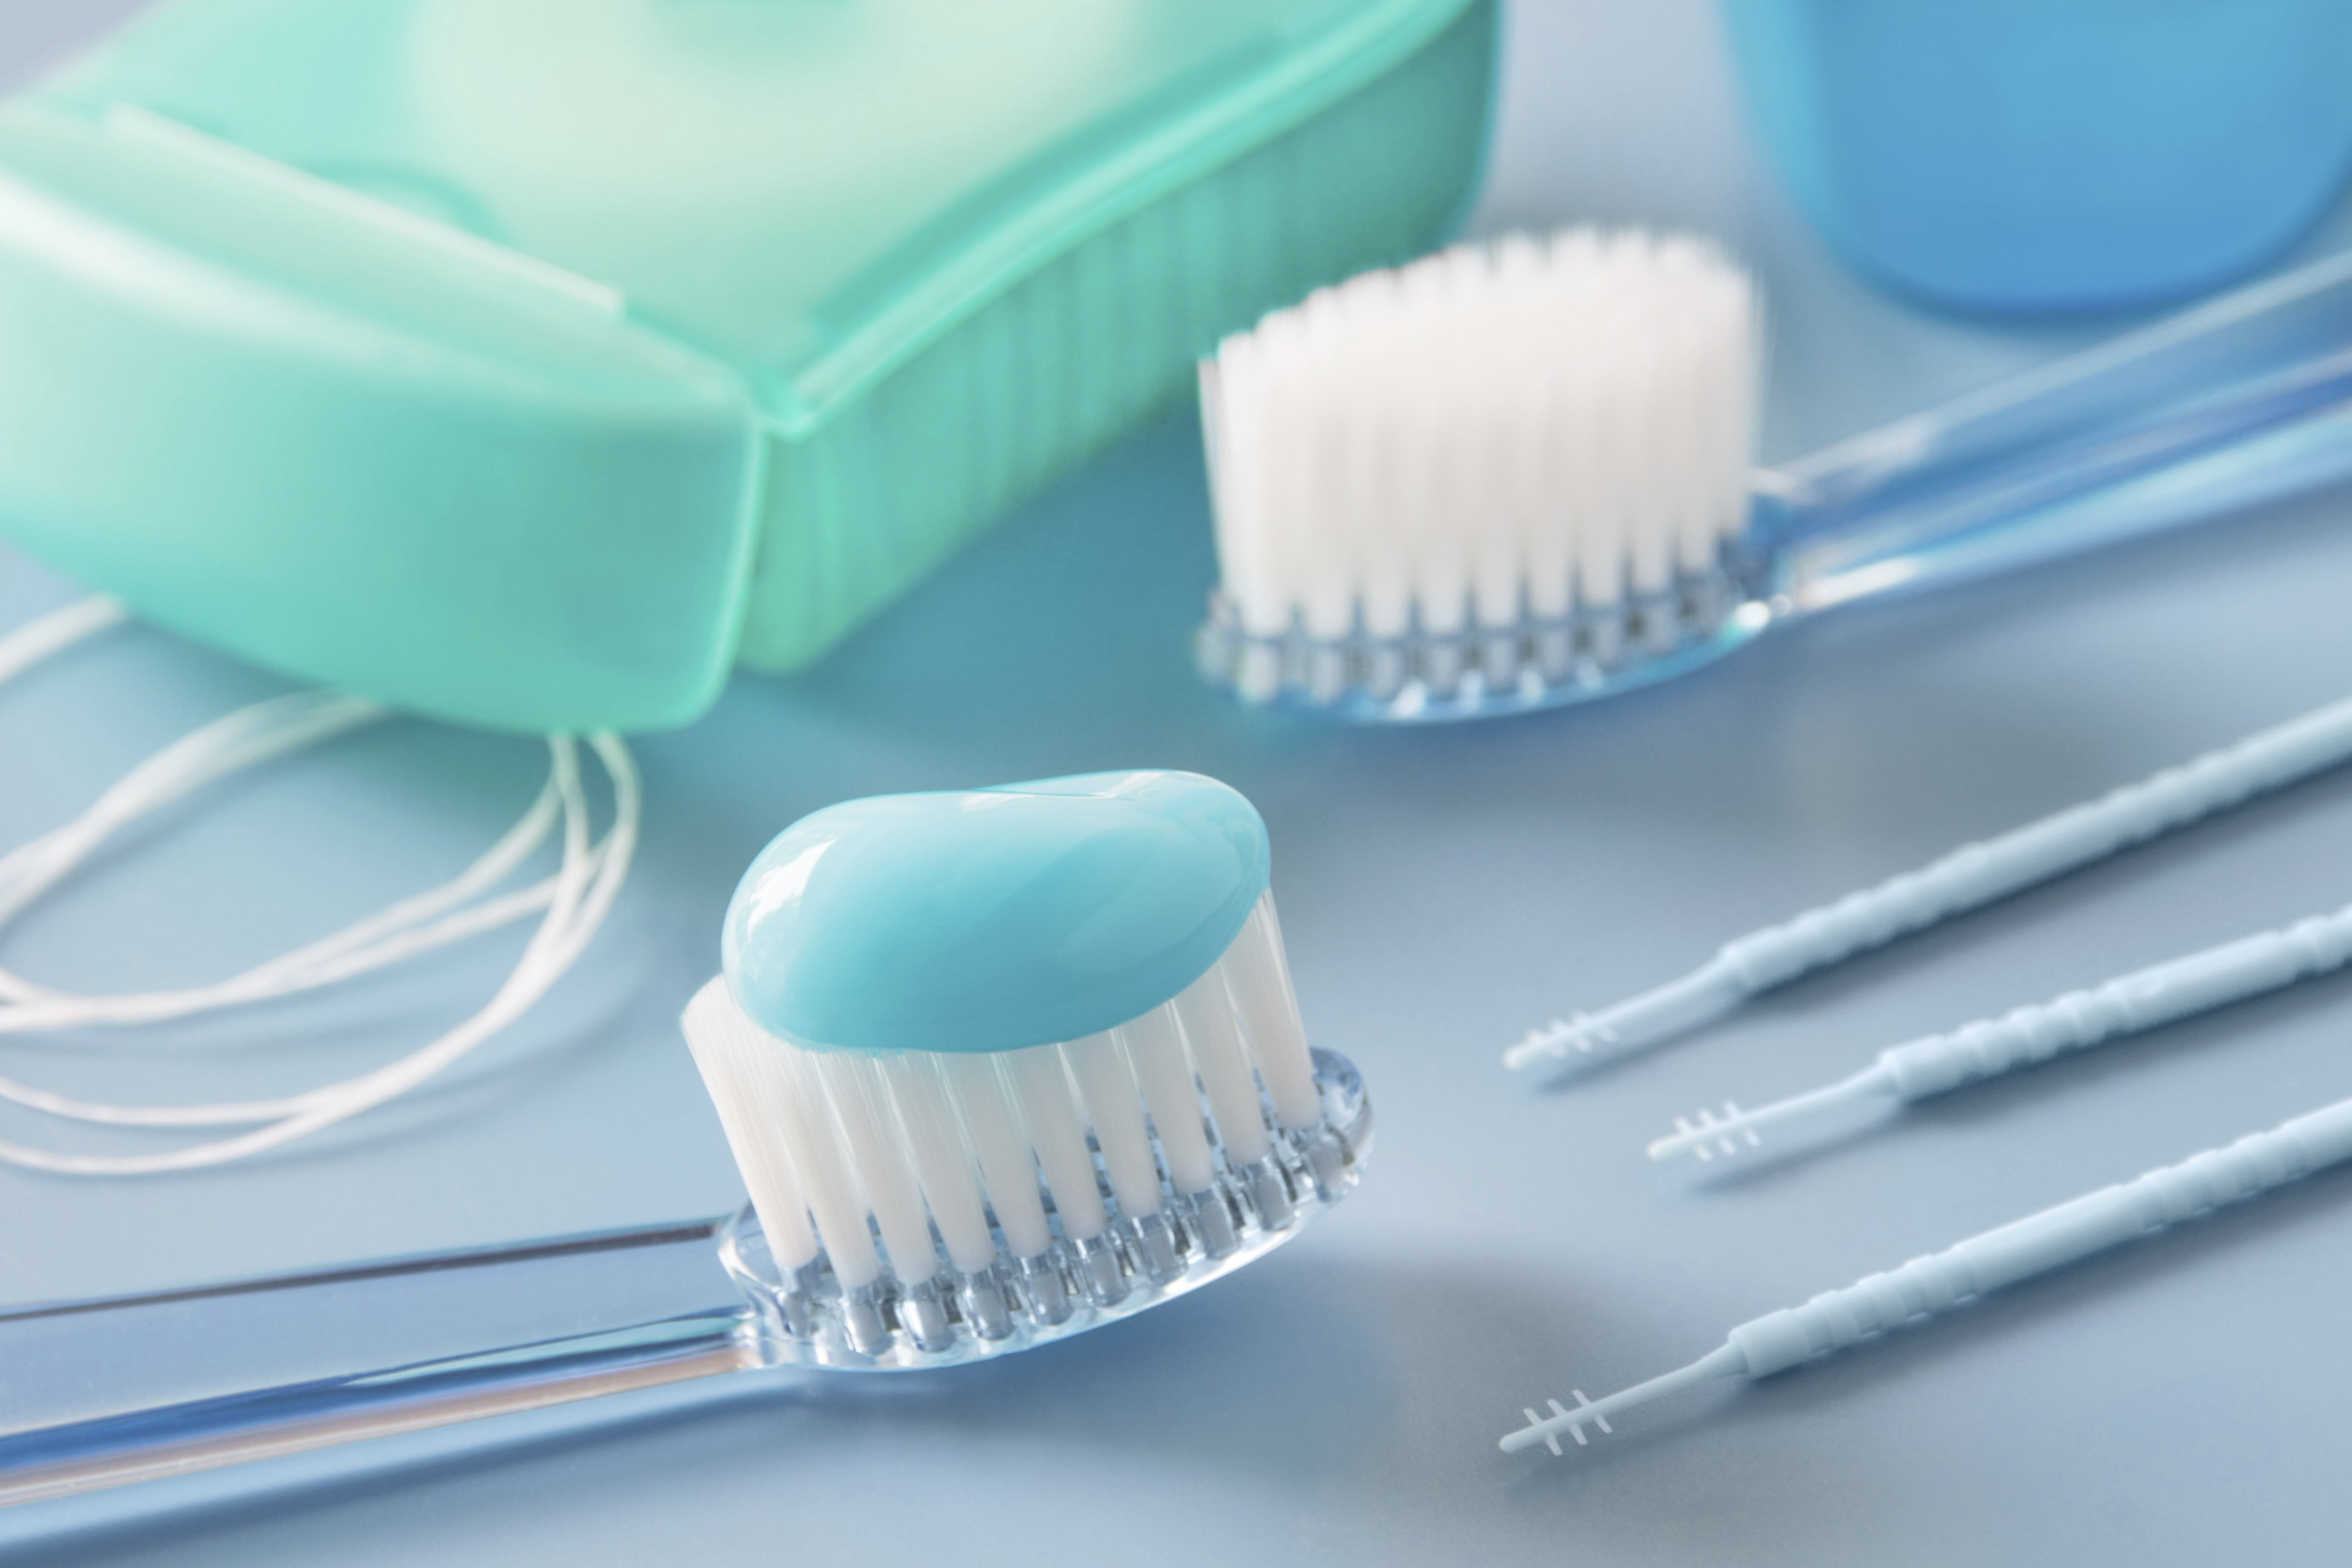 Toothbrushes with toothpaste on one of them in dental office and flossing tools